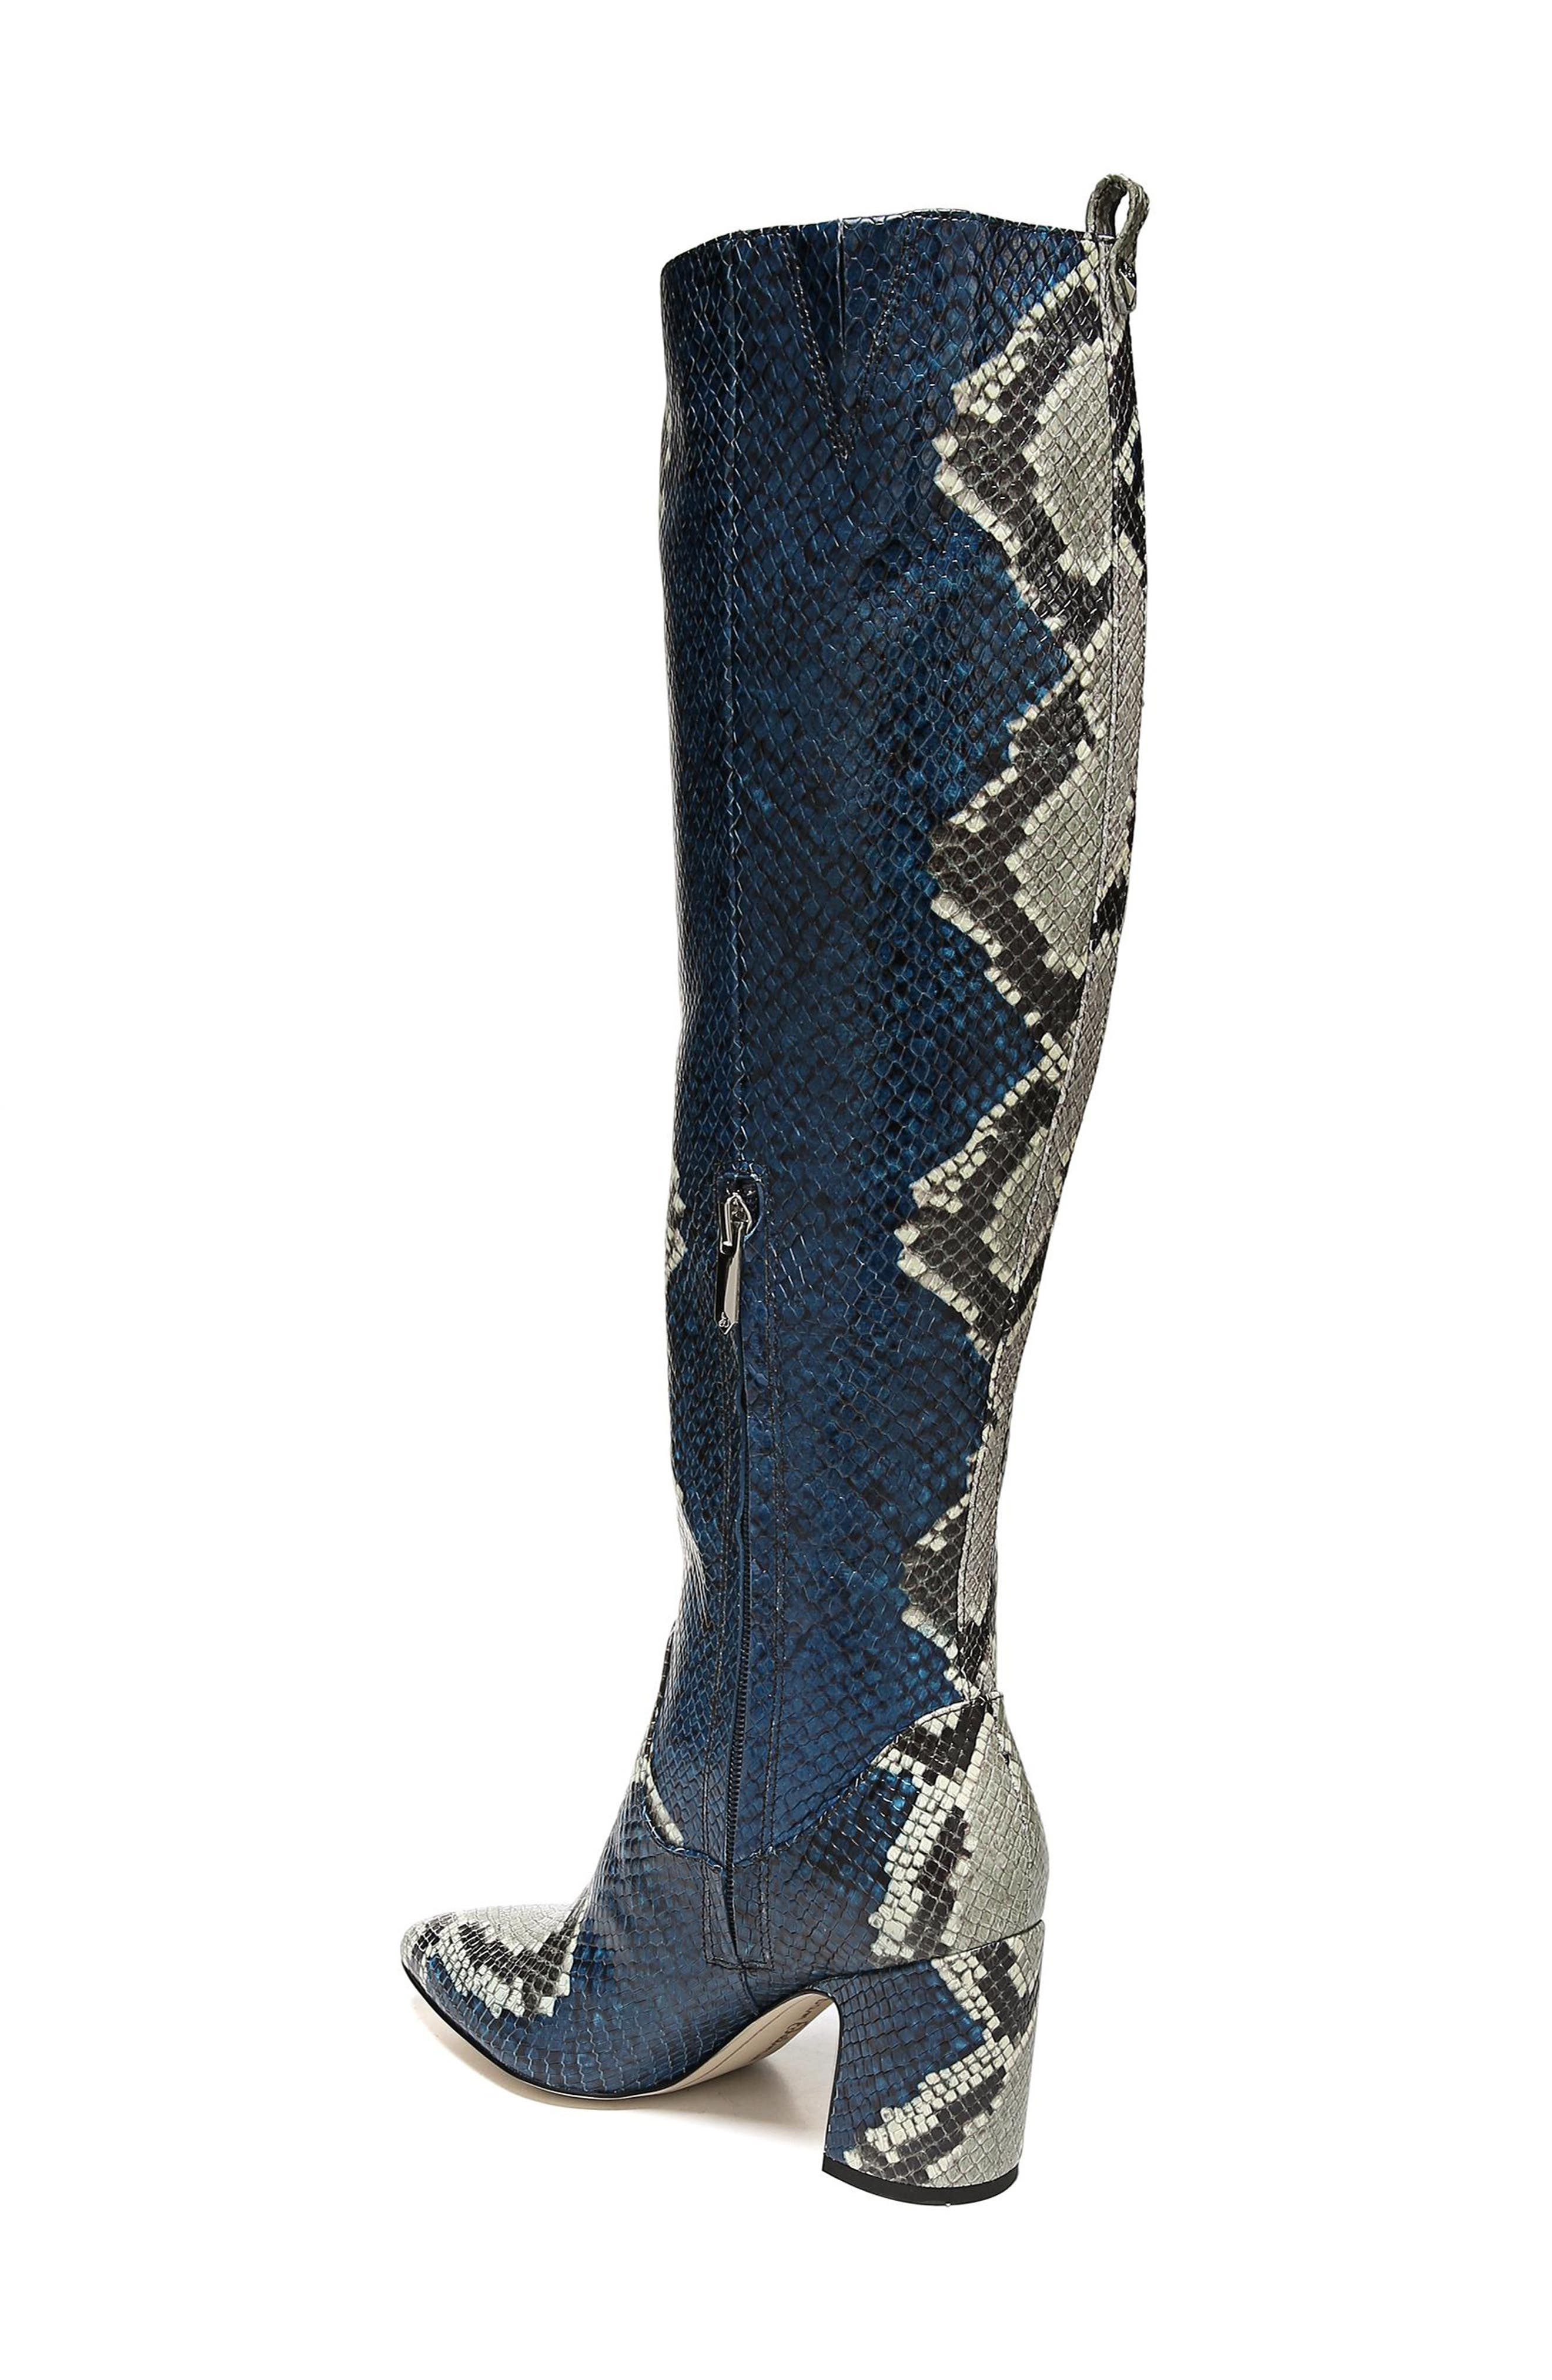 Hai Knee High Boot,                             Alternate thumbnail 2, color,                             PEACOCK EMBOSSED LEATHER